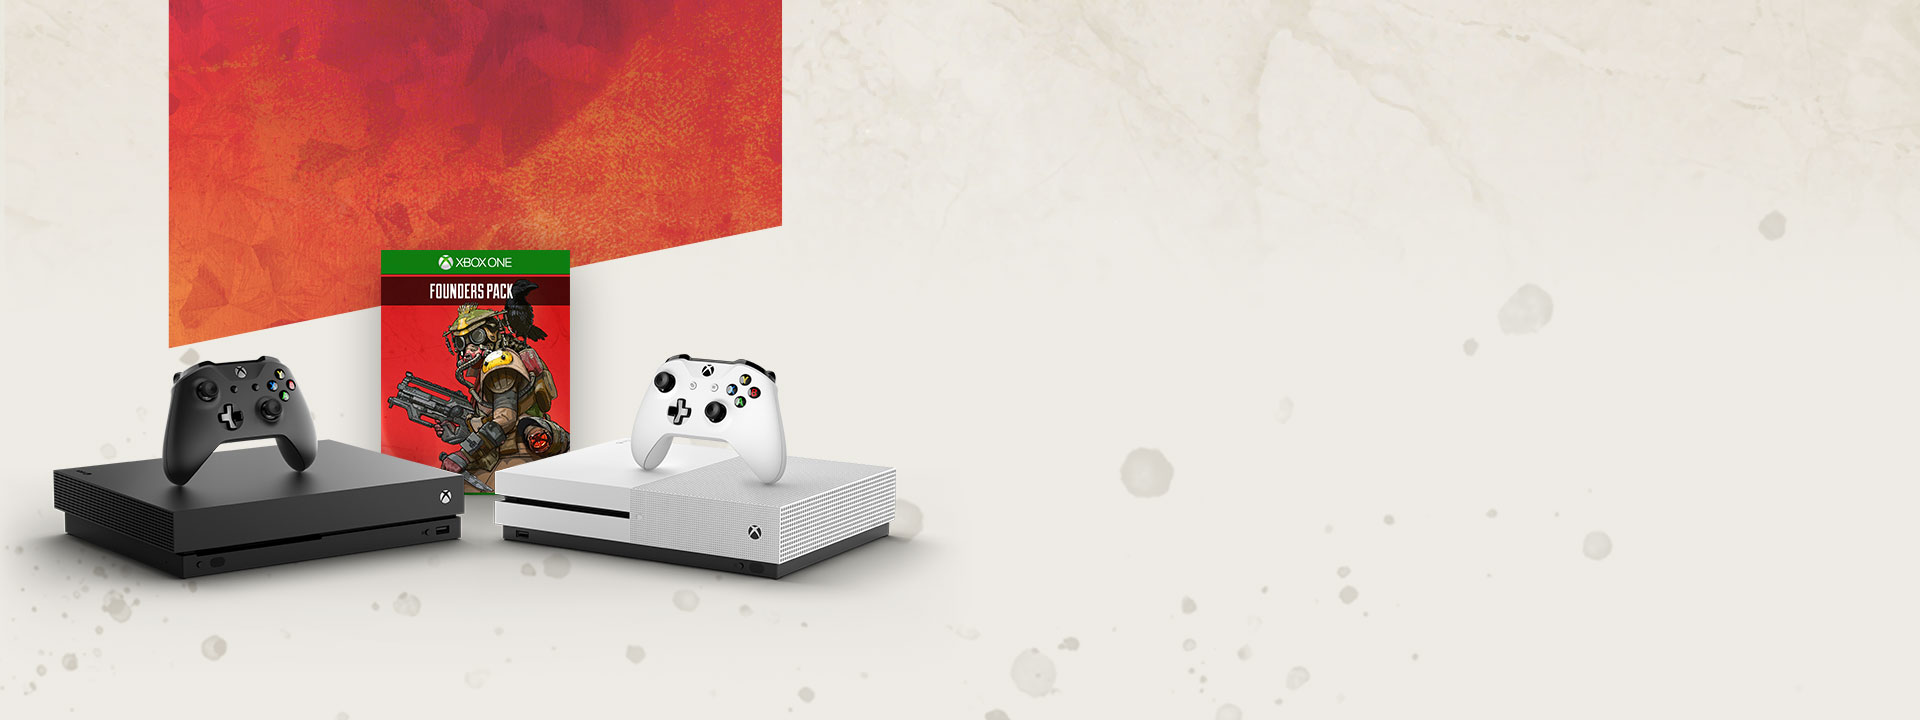 A black Xbox One X and white Xbox One S in front of a box shot of the Apex Legends Founders pack. The consoles and game are on a beige background that features dark speckles and a banner from Apex Legend's key visual